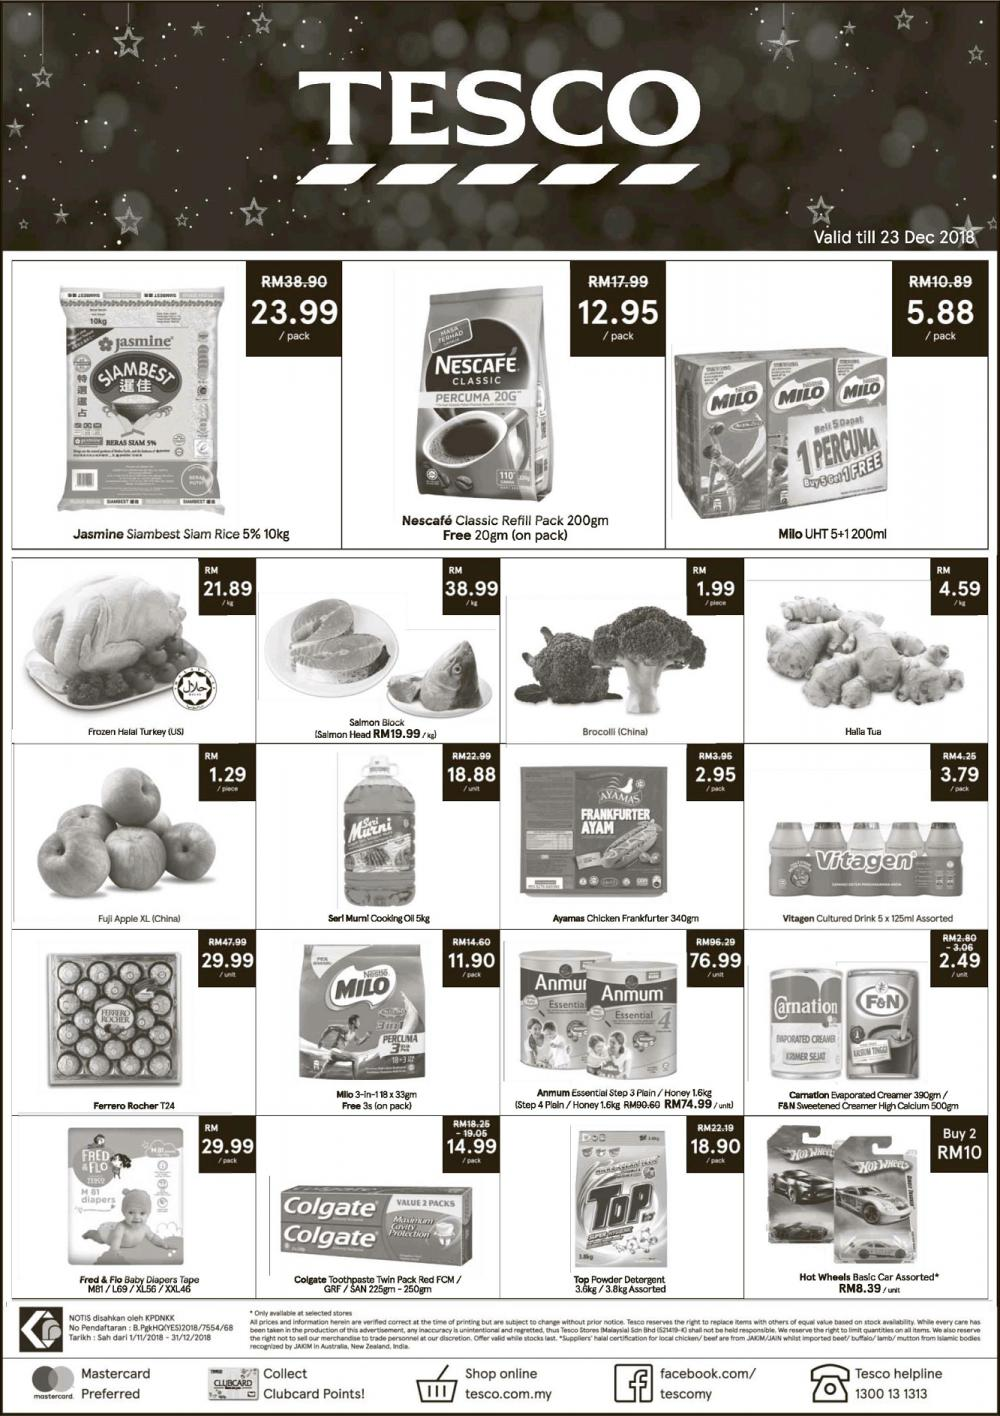 Tesco Weekend Promotion (22 December 2018 - 23 December 2018)